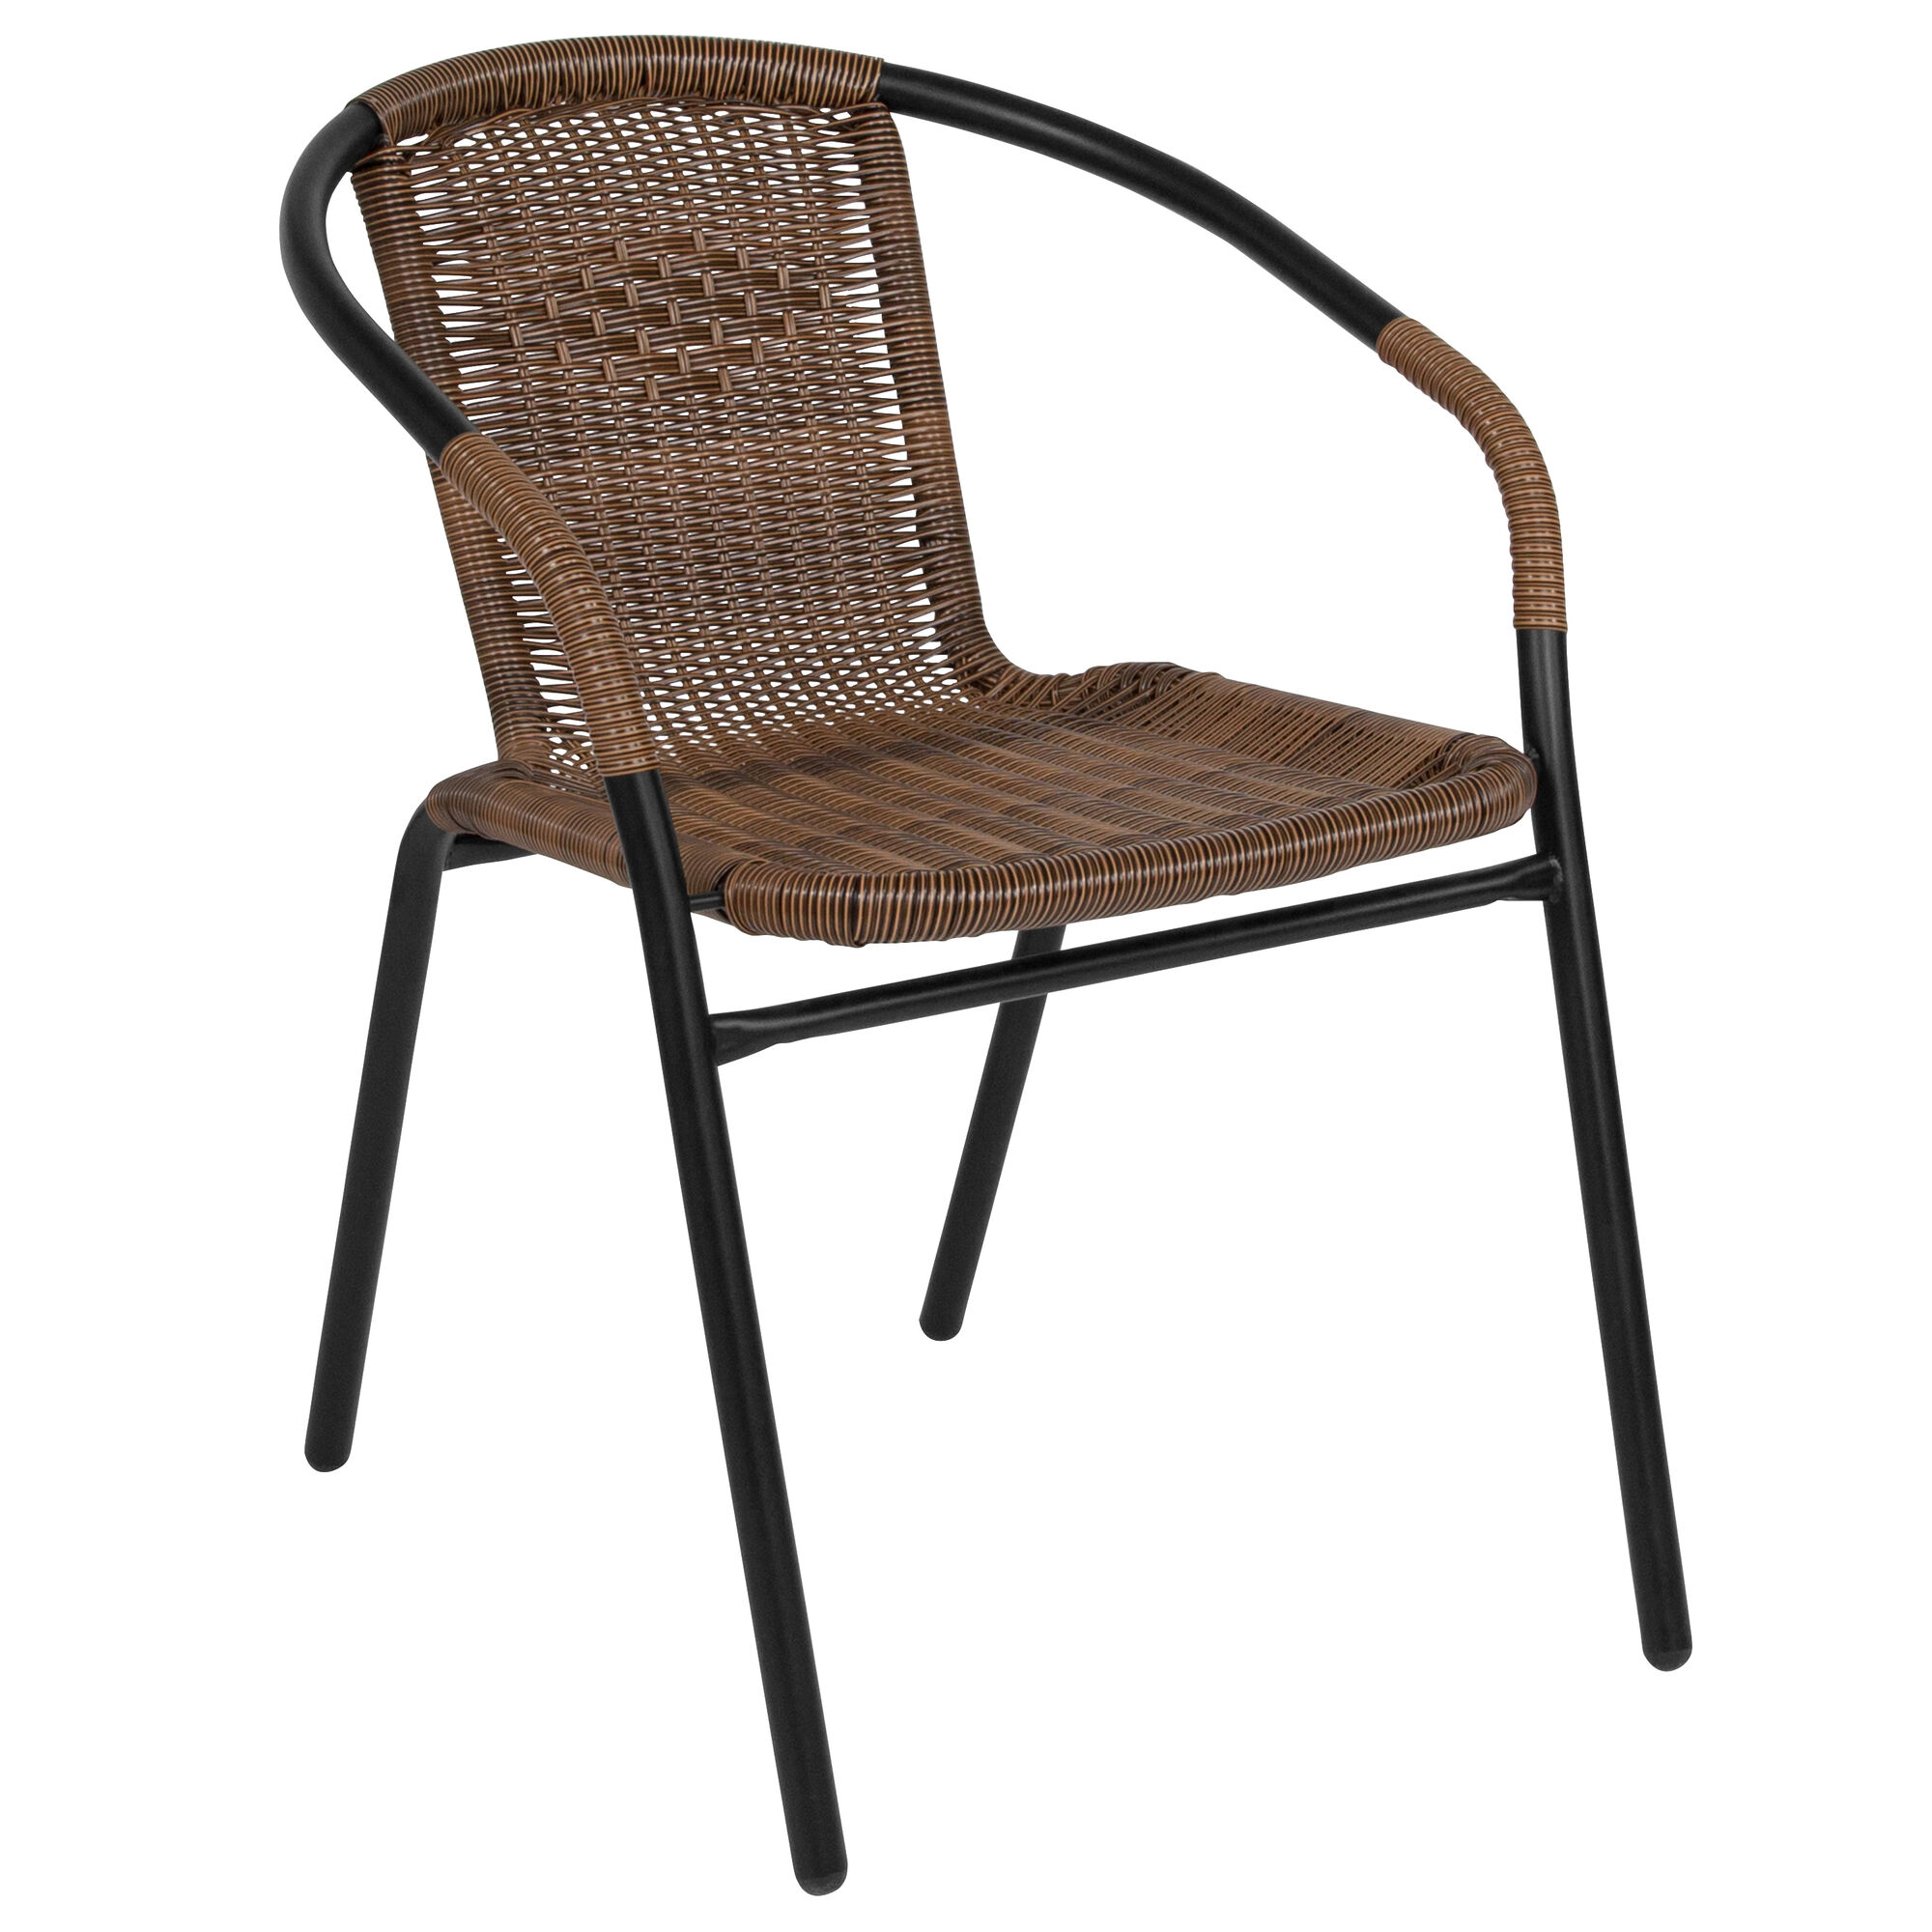 Fantastic Medium Brown Rattan Indoor Outdoor Restaurant Stack Chair Bralicious Painted Fabric Chair Ideas Braliciousco